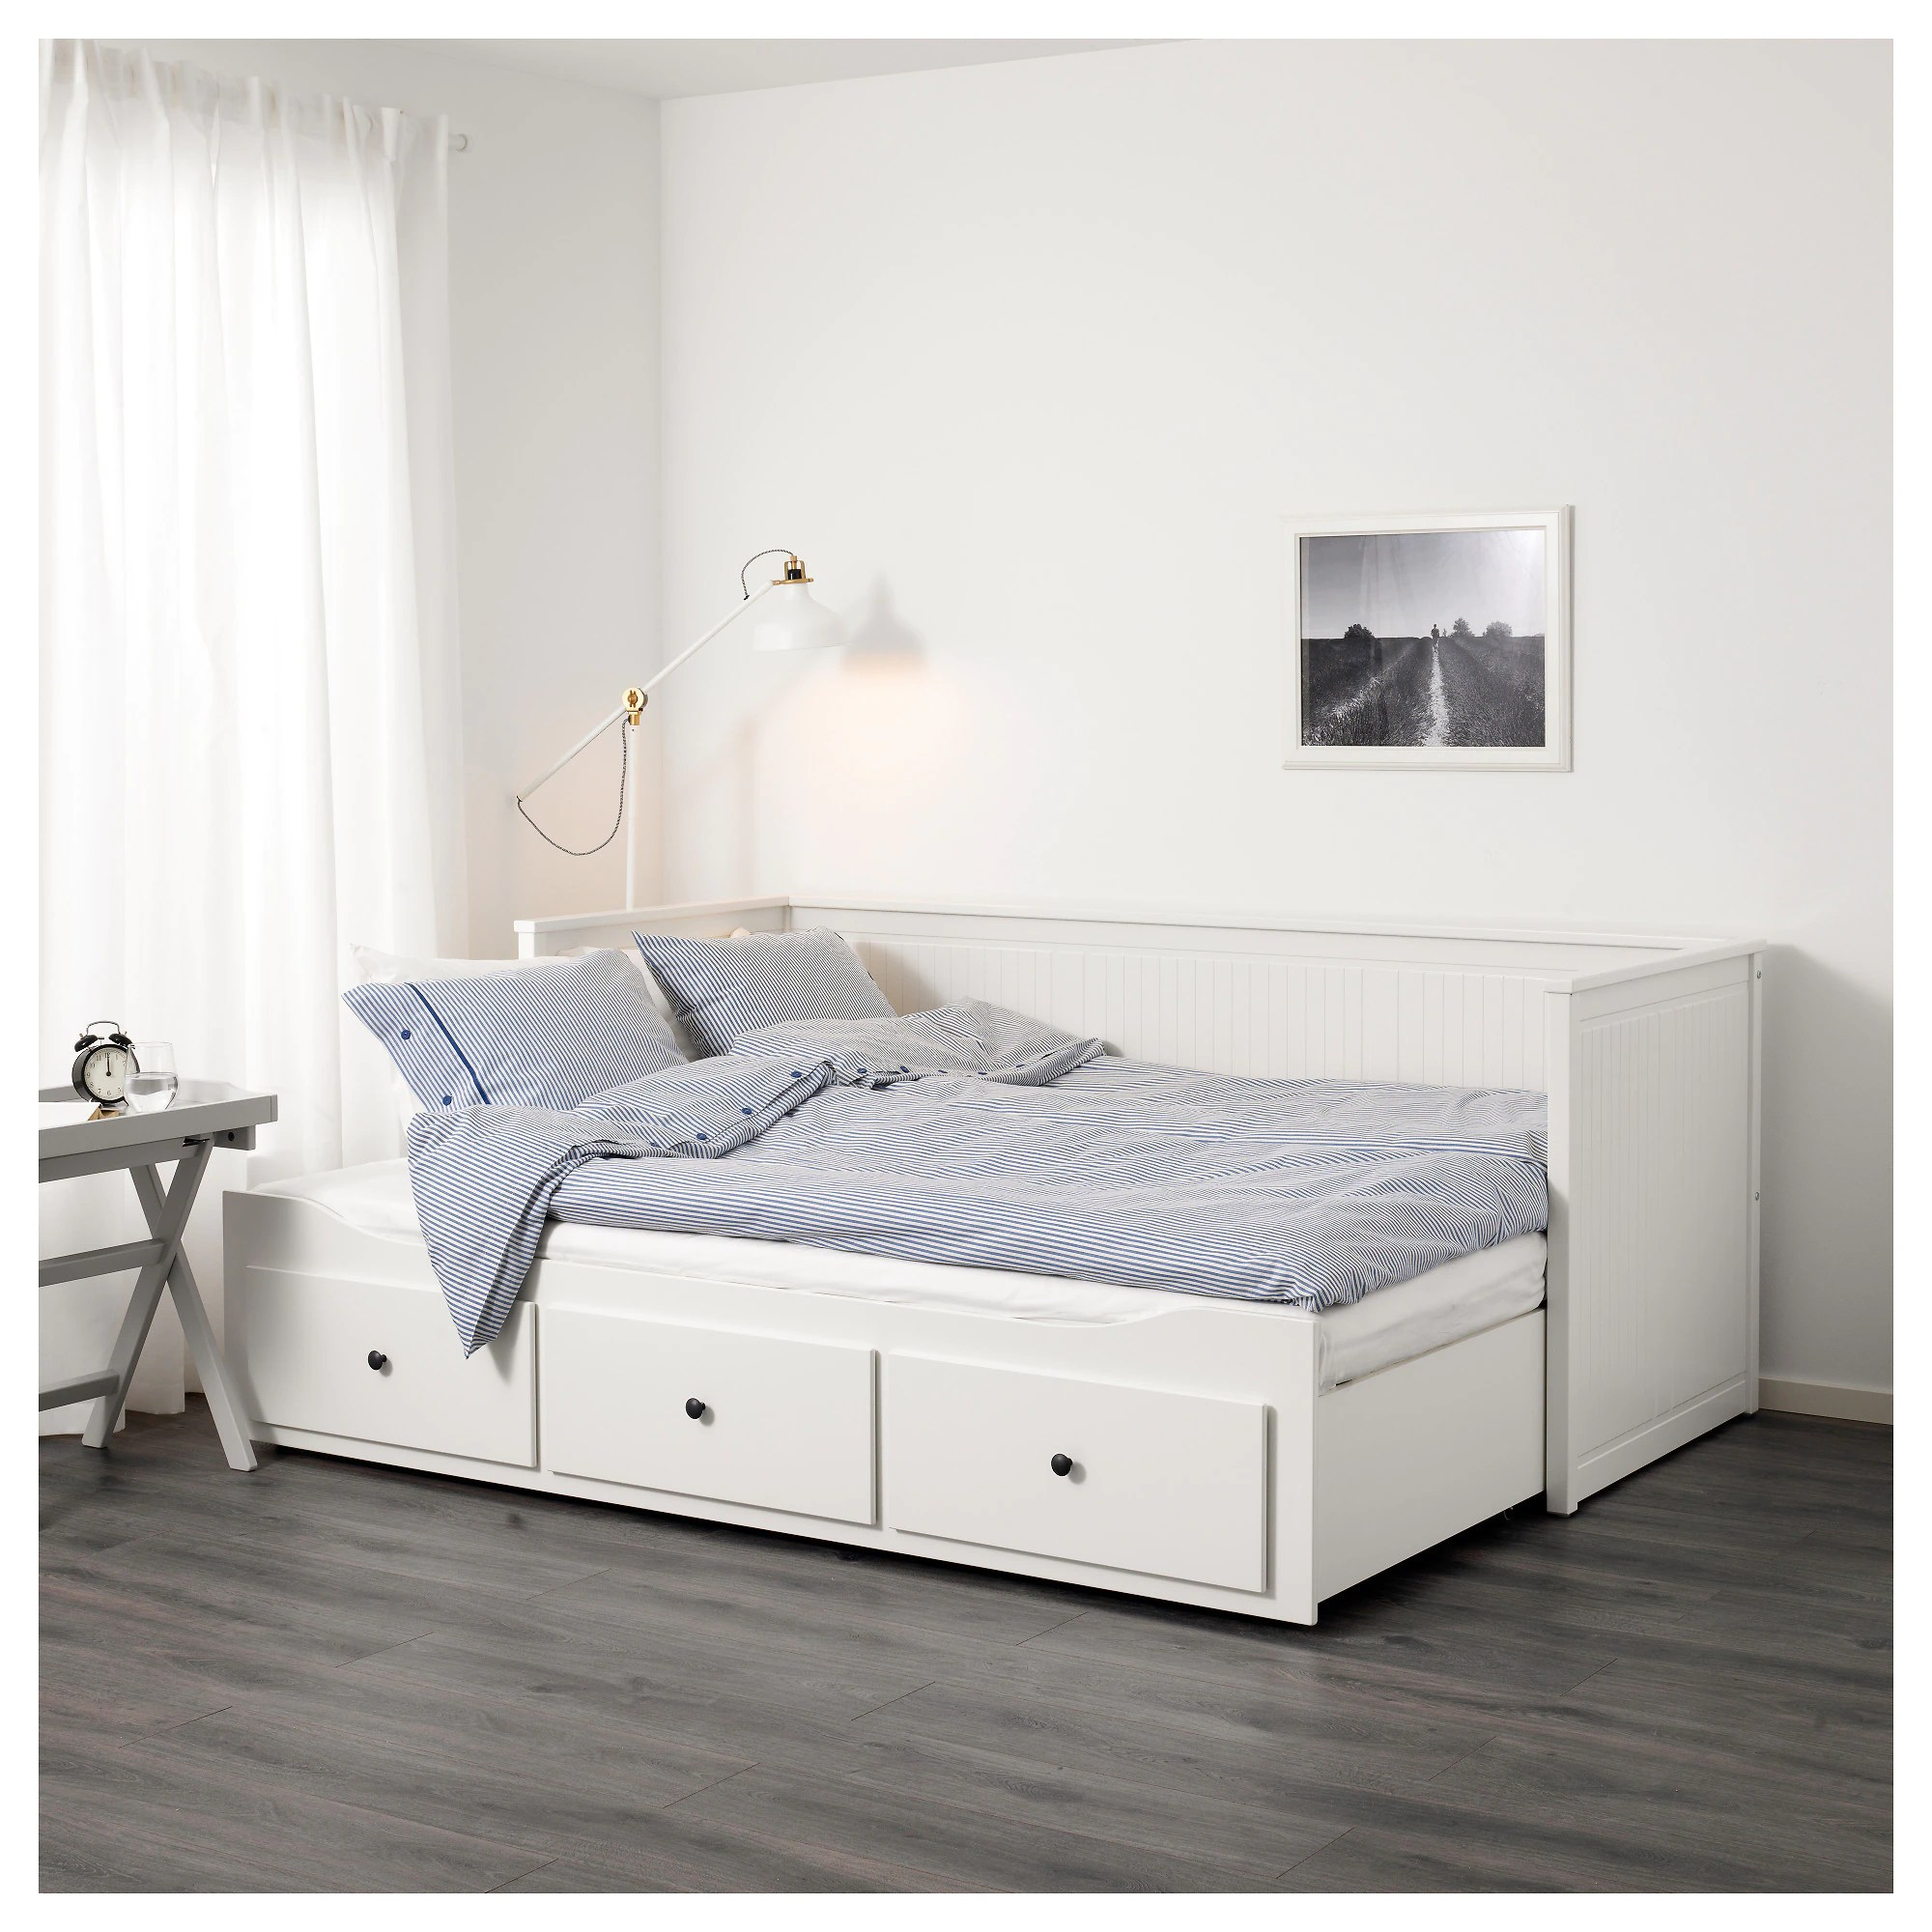 Ikea French Days Hemnes Daybed Frame With 3 Drawers White